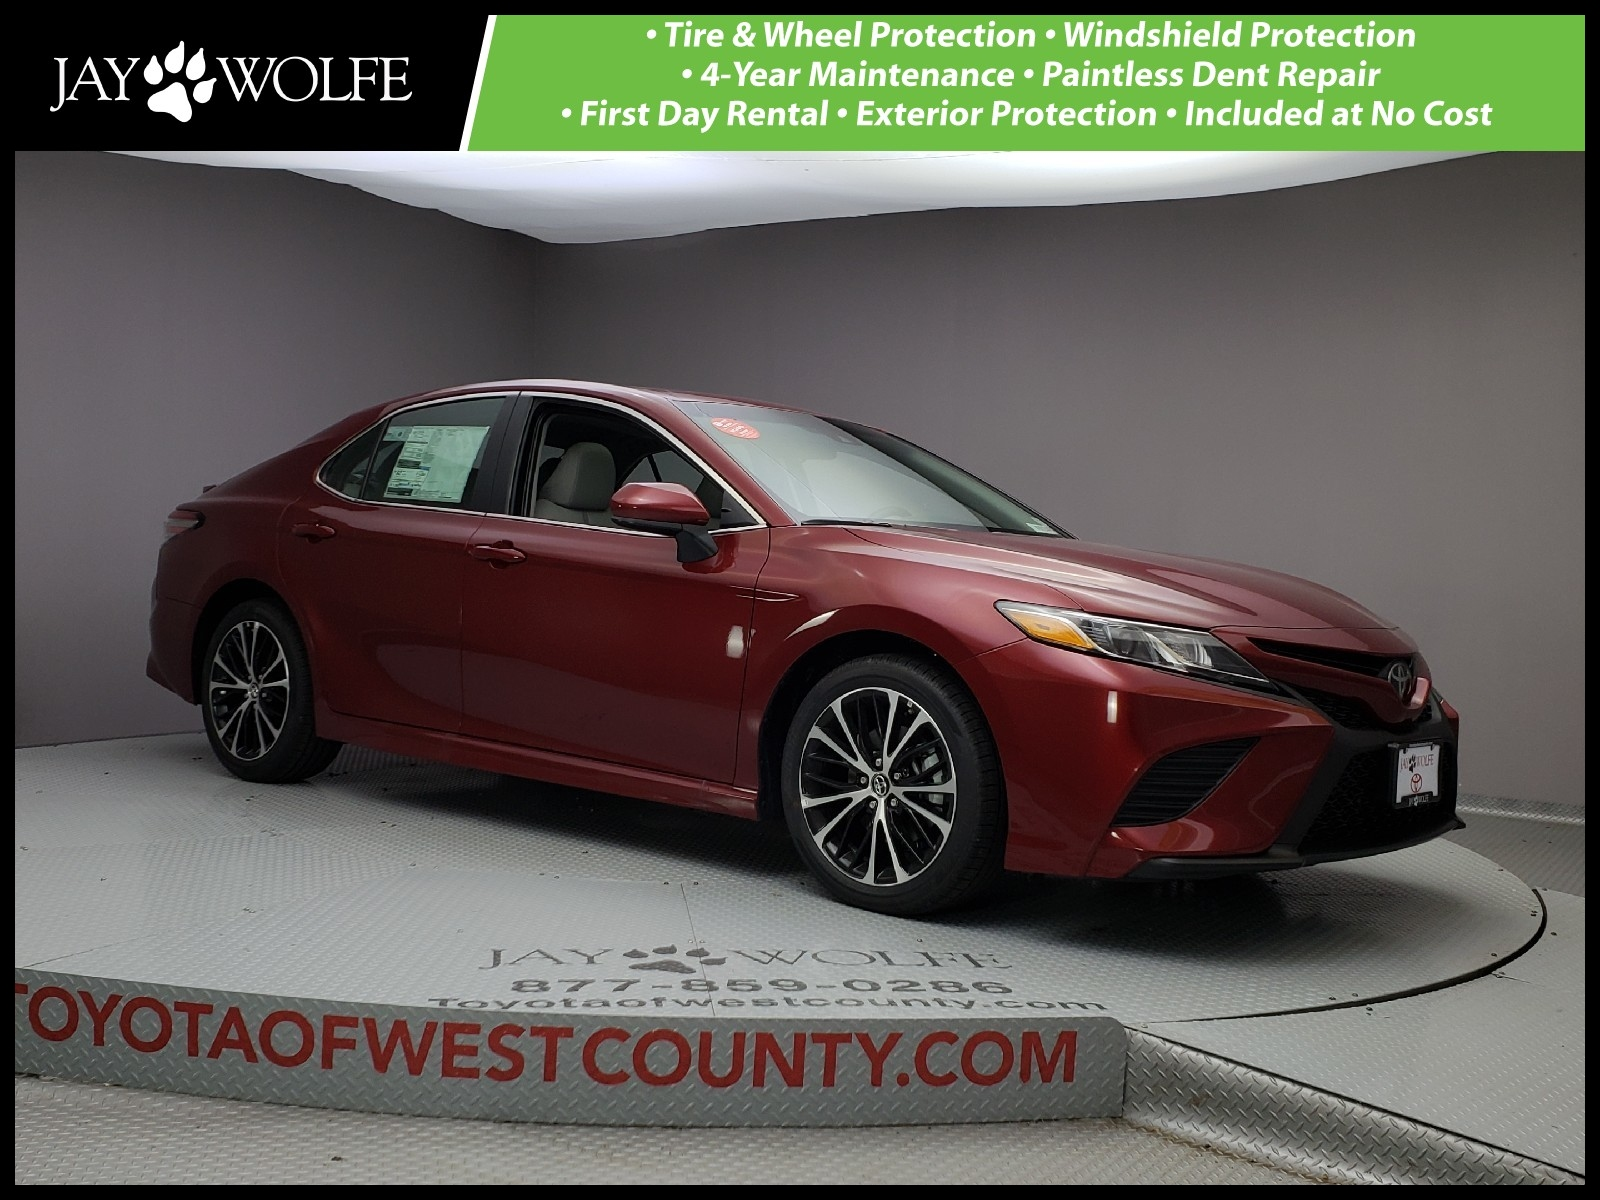 New 2018 TOYOTA CAMRY SE AUTO Sedan in Ballwin W